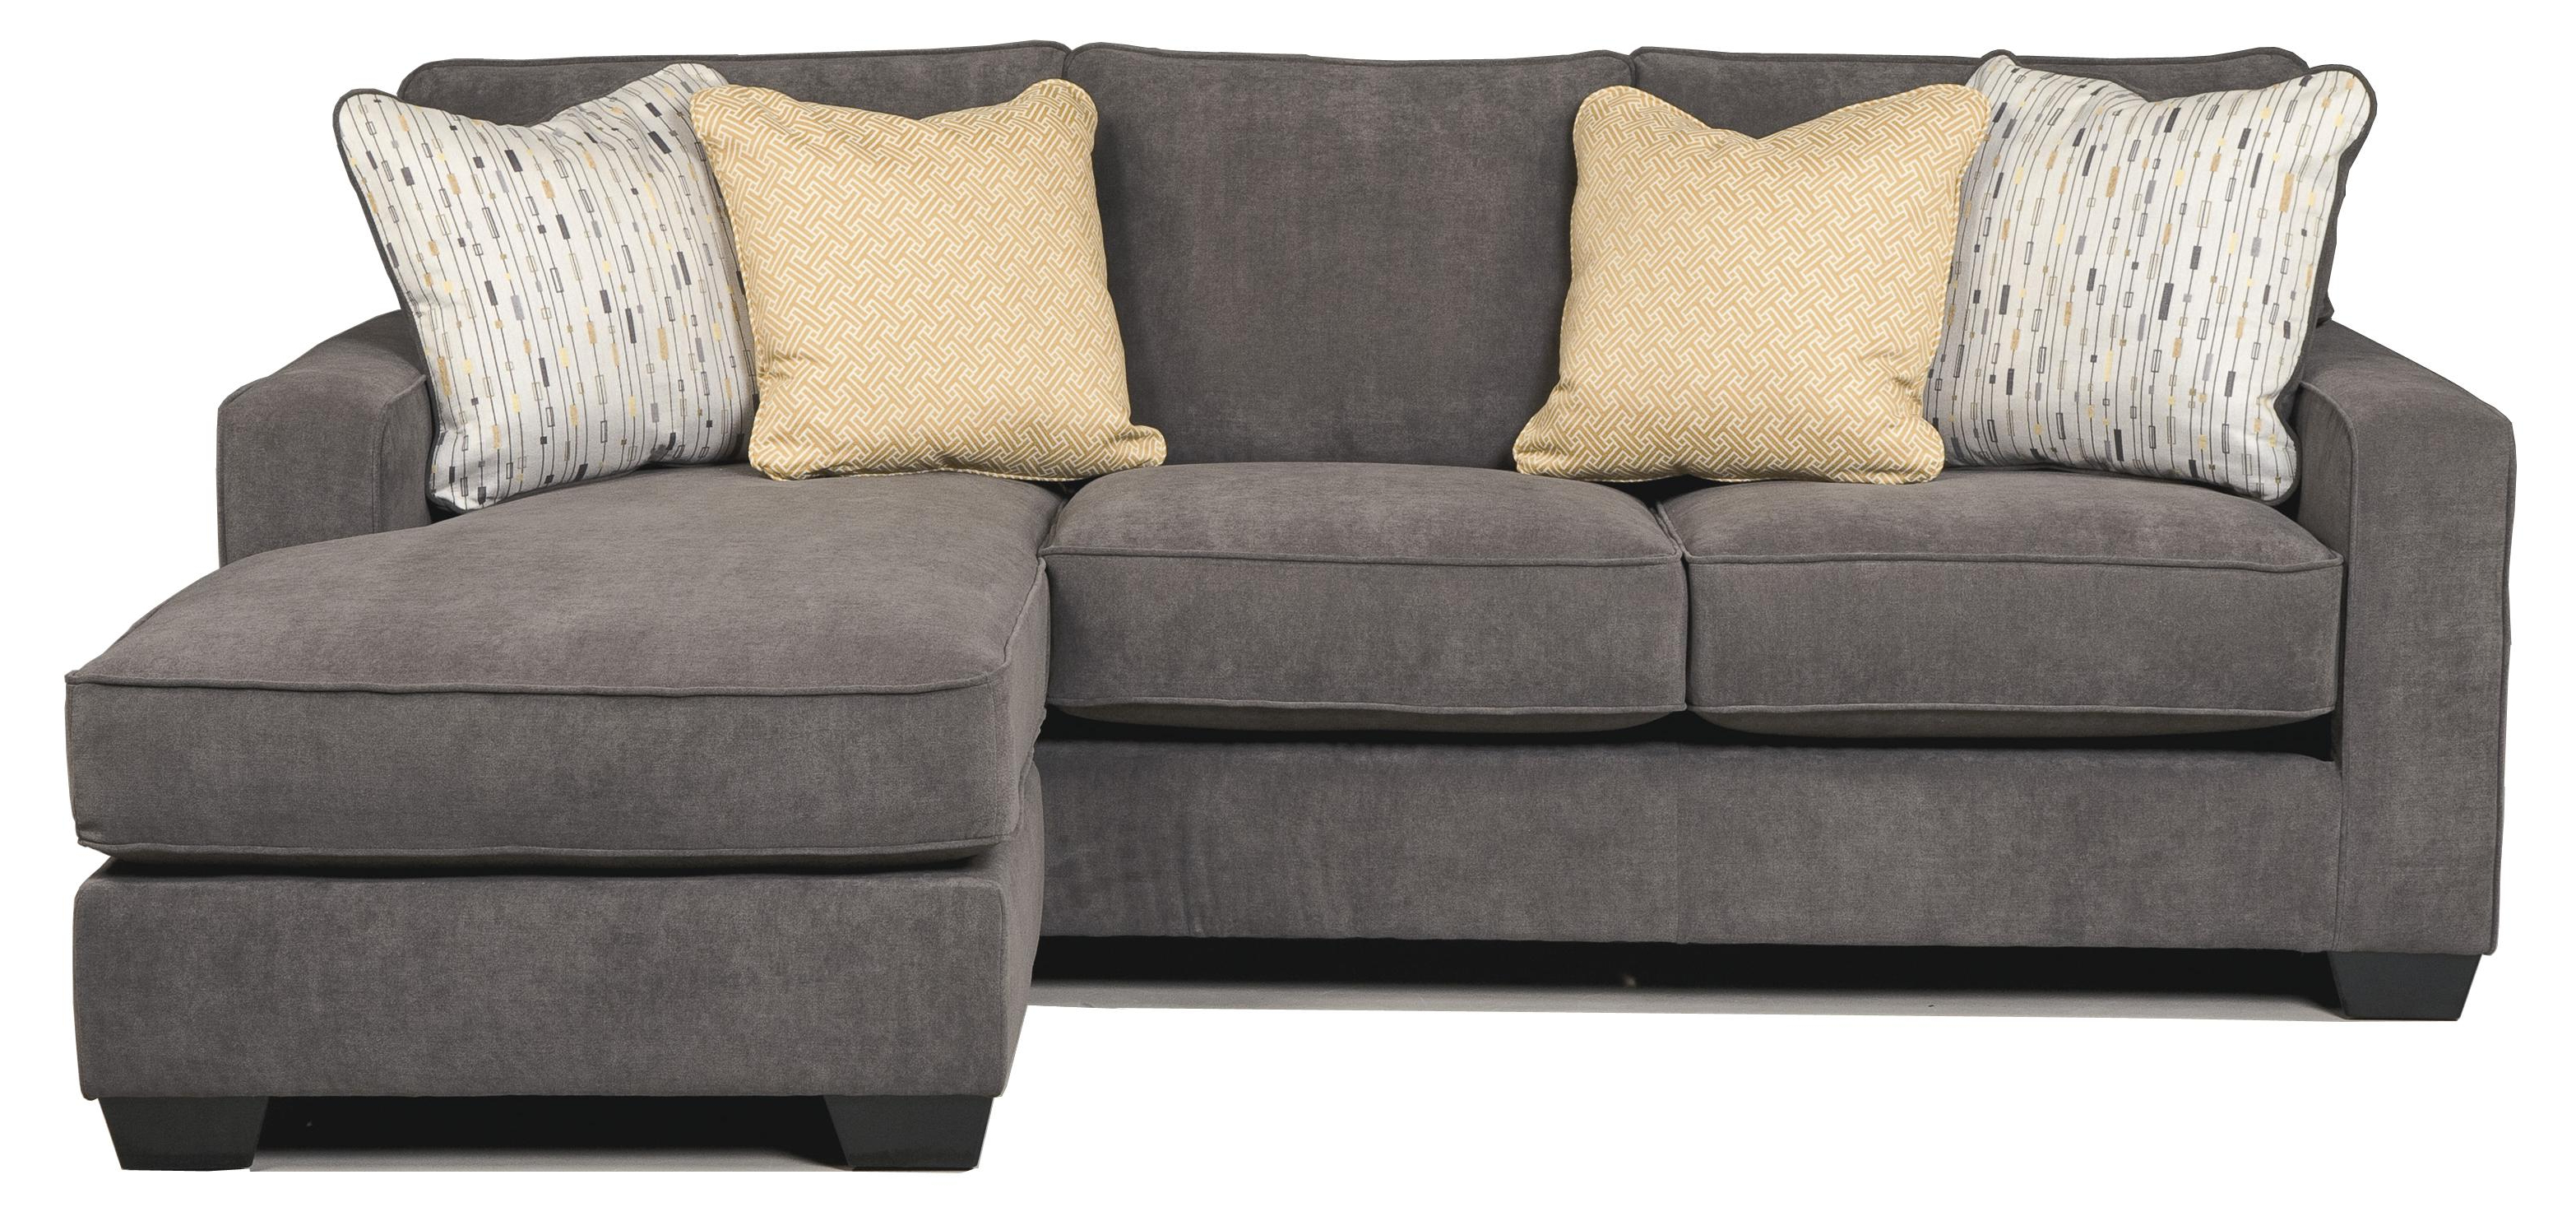 Harper Foam 3 Piece Sectionals With Raf Chaise With 2018 Harper Contemporary Sofa Chaise With Track Arms & Left Or Right (View 10 of 20)